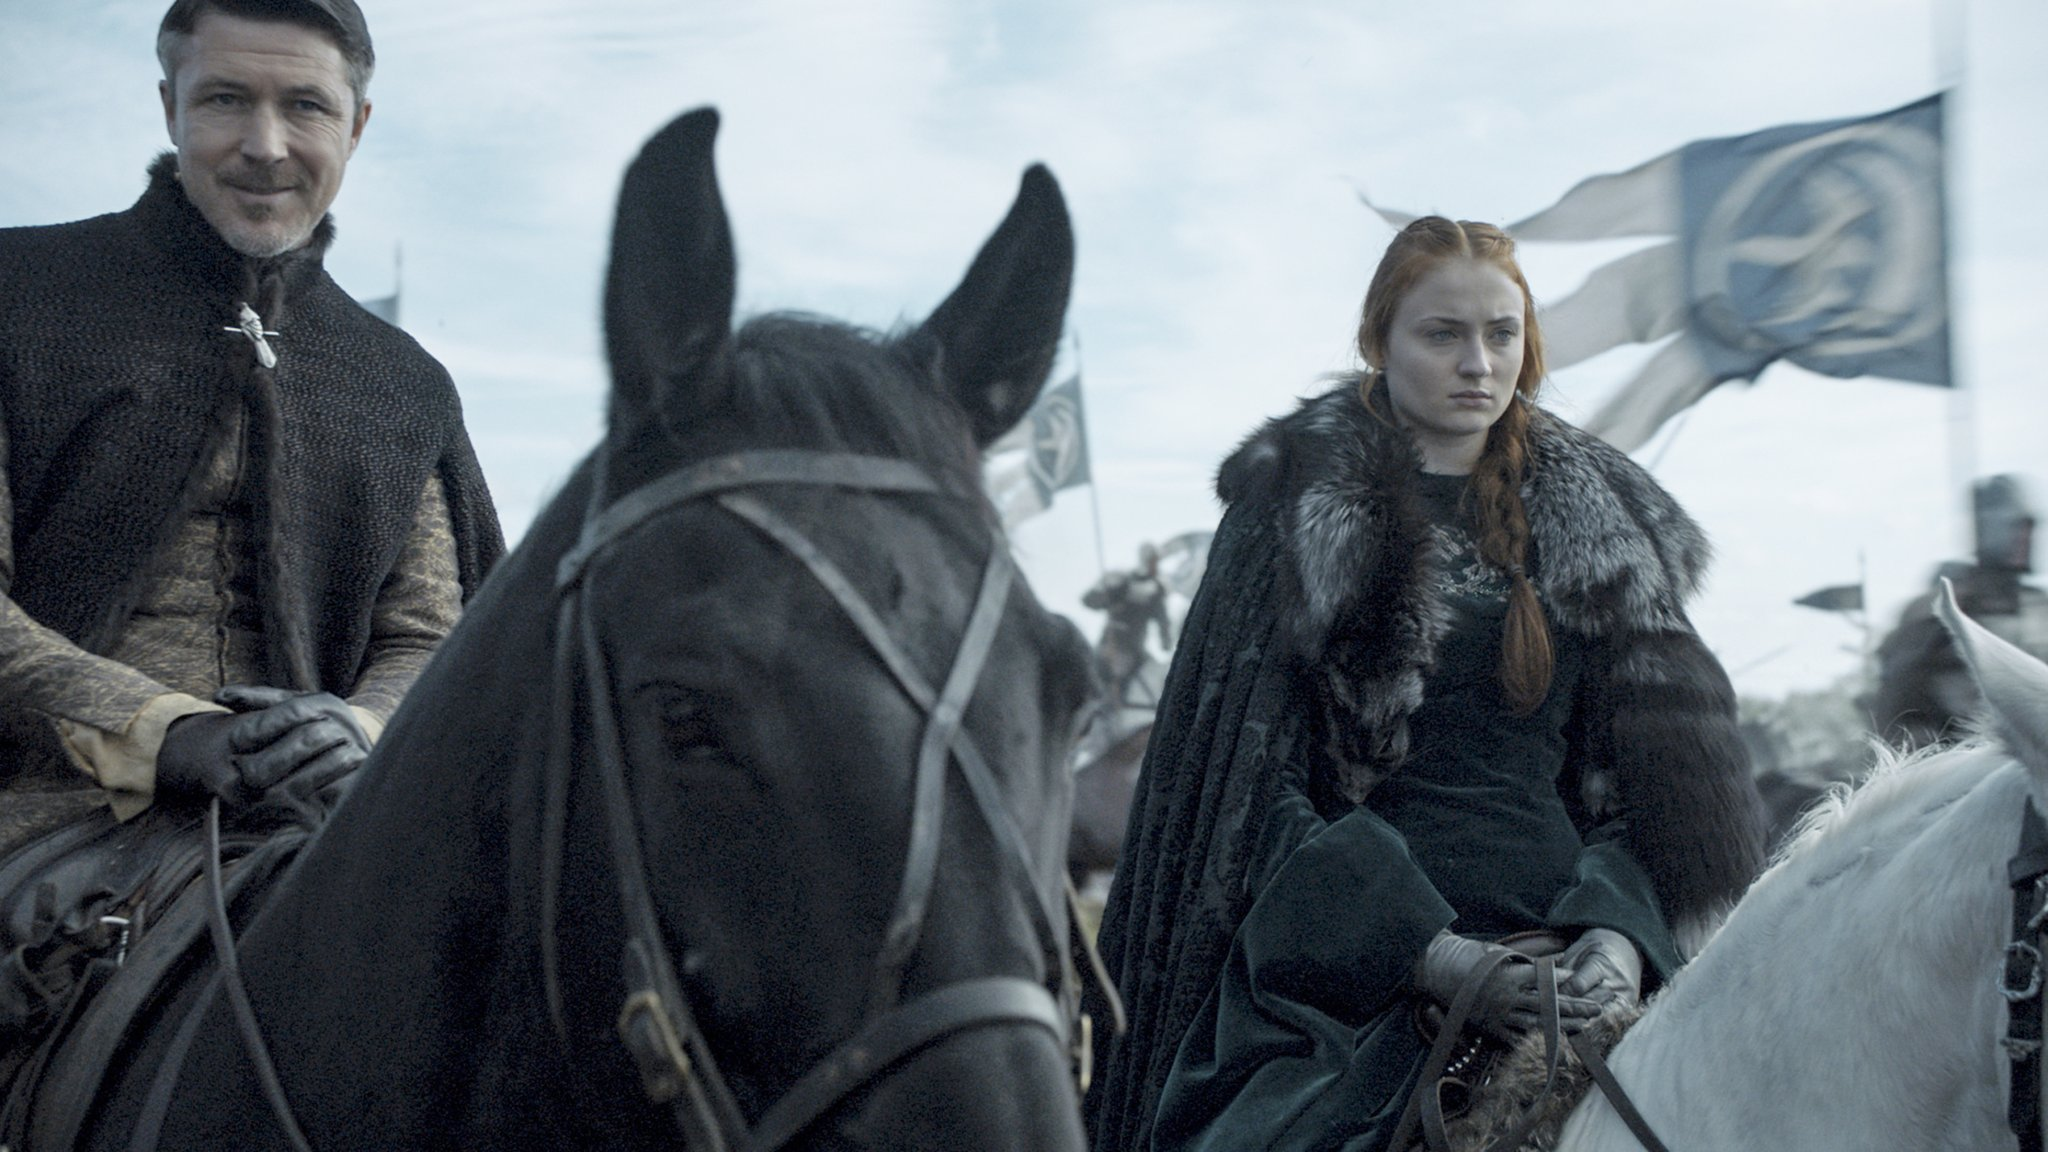 HBO accidentally airs an hour of episode 6 — Game of Thrones